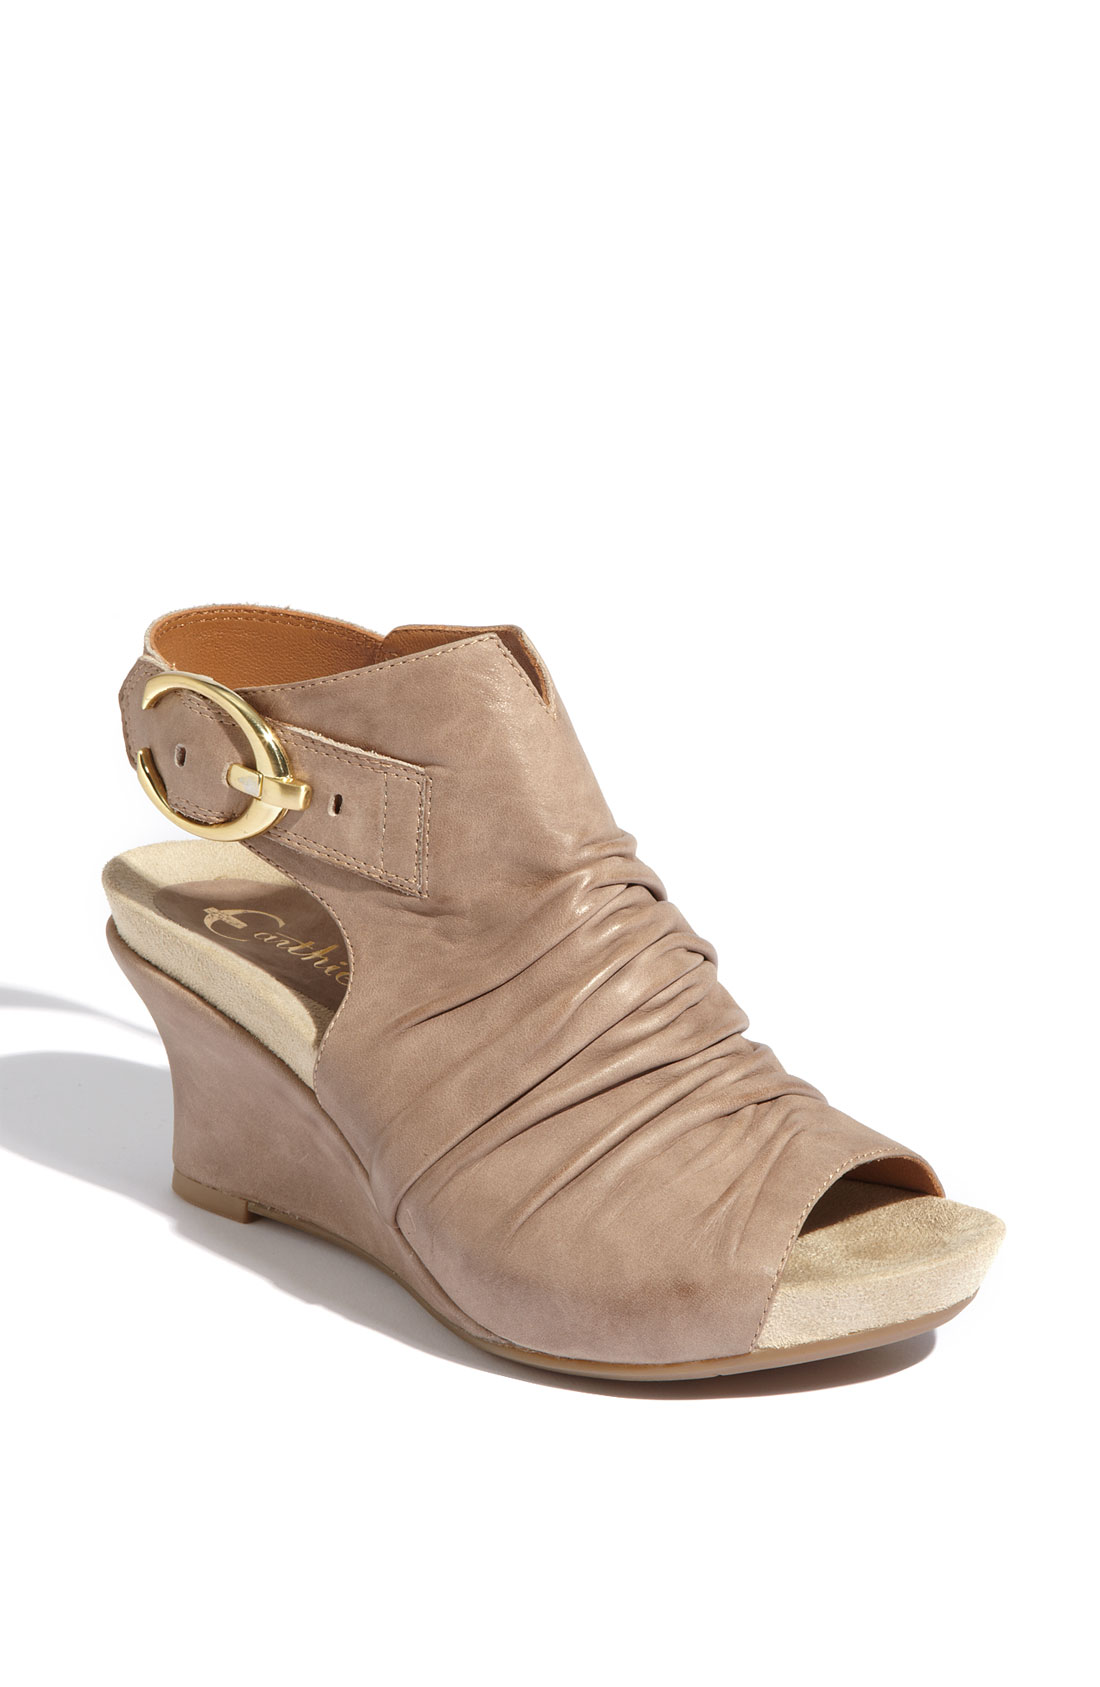 earthies 174 bonaire wedge sandal in gray grey taupe lyst